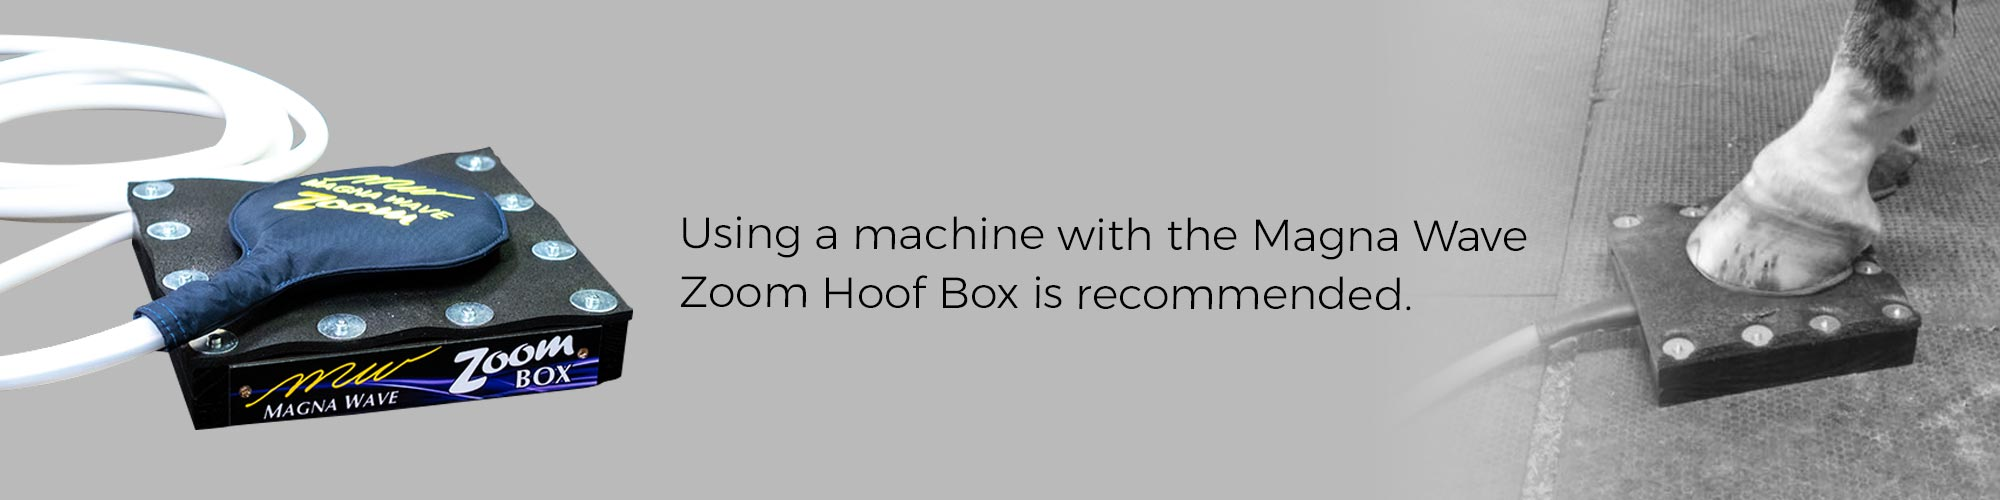 Using a machine with the Magna Wave Zoom Hoof Box is recommended